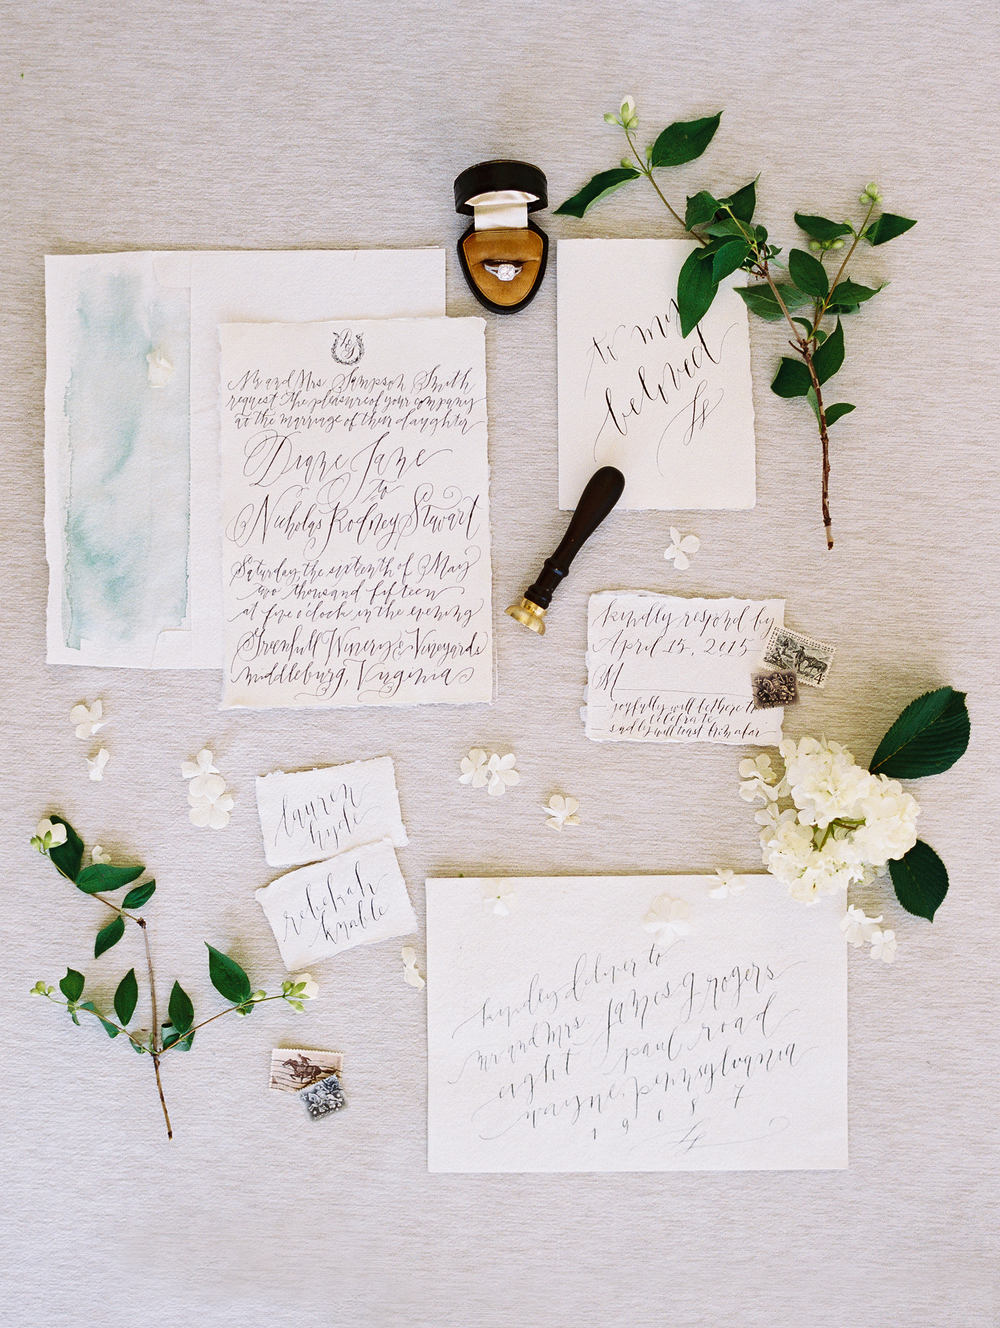 Middleburg Wedding Inspiration | Wild Green Yonder